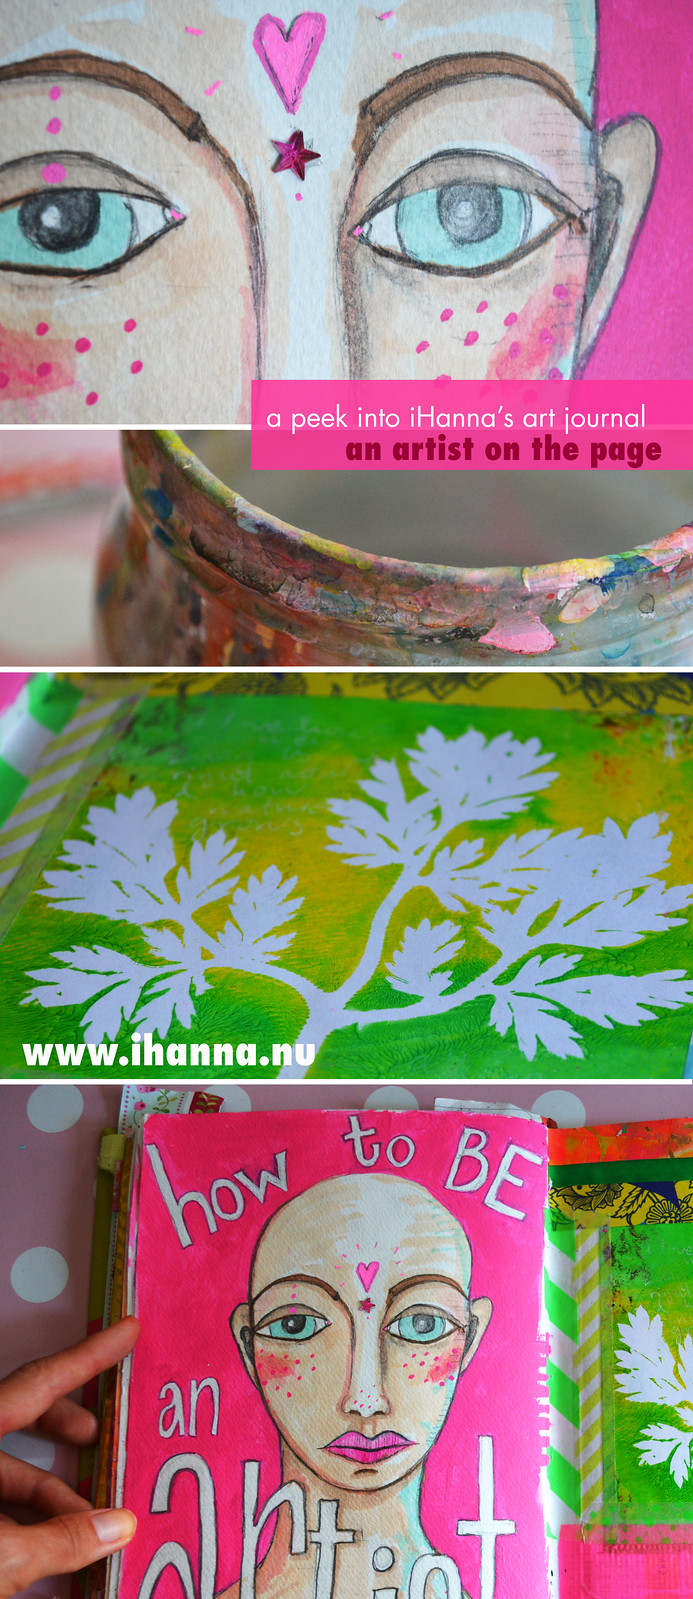 How to BE an artist on the page by showing up and making art, of course - more inspiration by @ihanna at www.ihanna.nu #artjournaling #mixedmedia